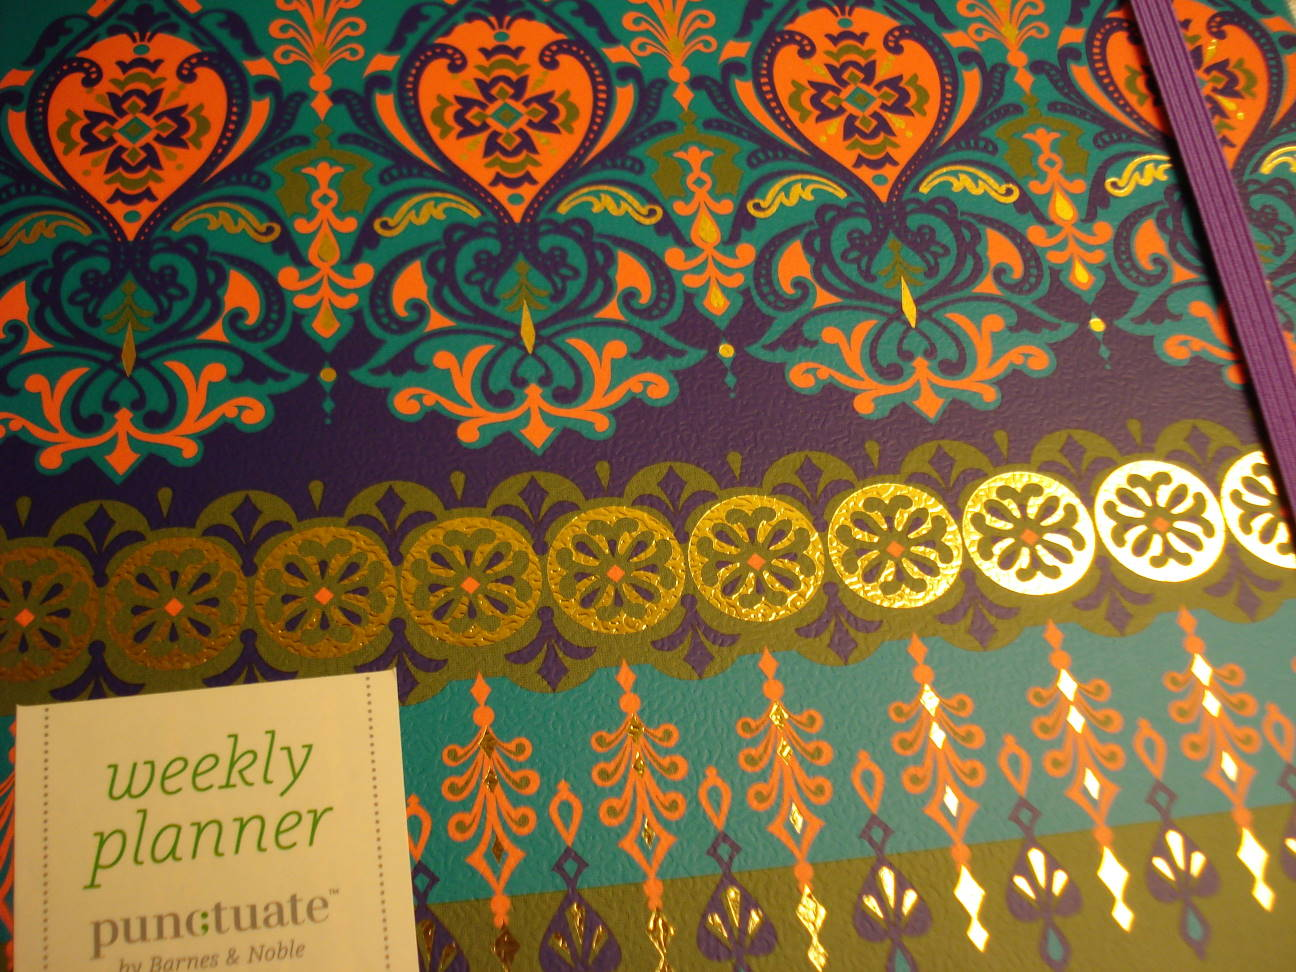 Mary's 2016 day book/calendar, close-up of cover.